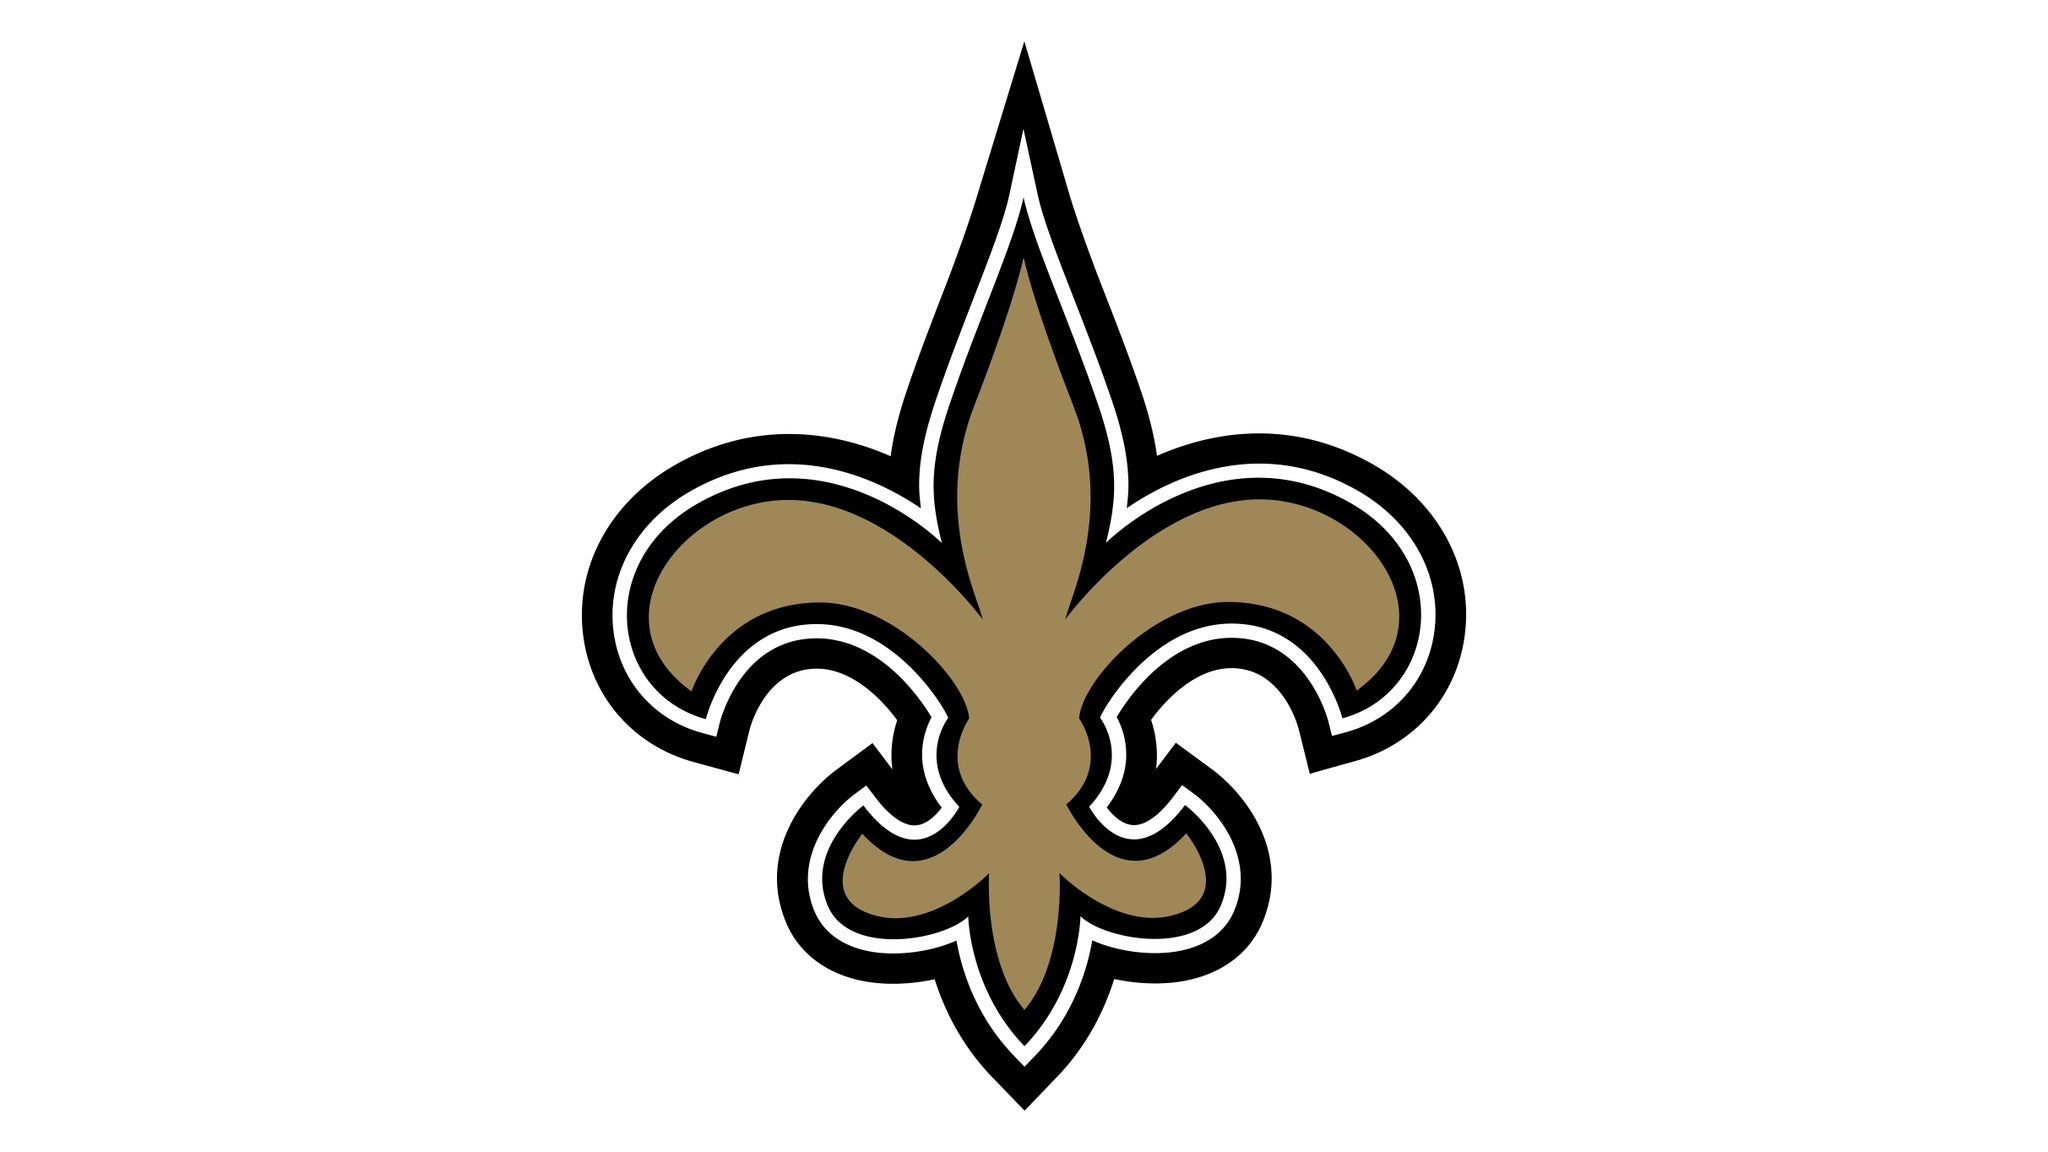 New Orleans Saints vs. Tampa Bay Buccaneers